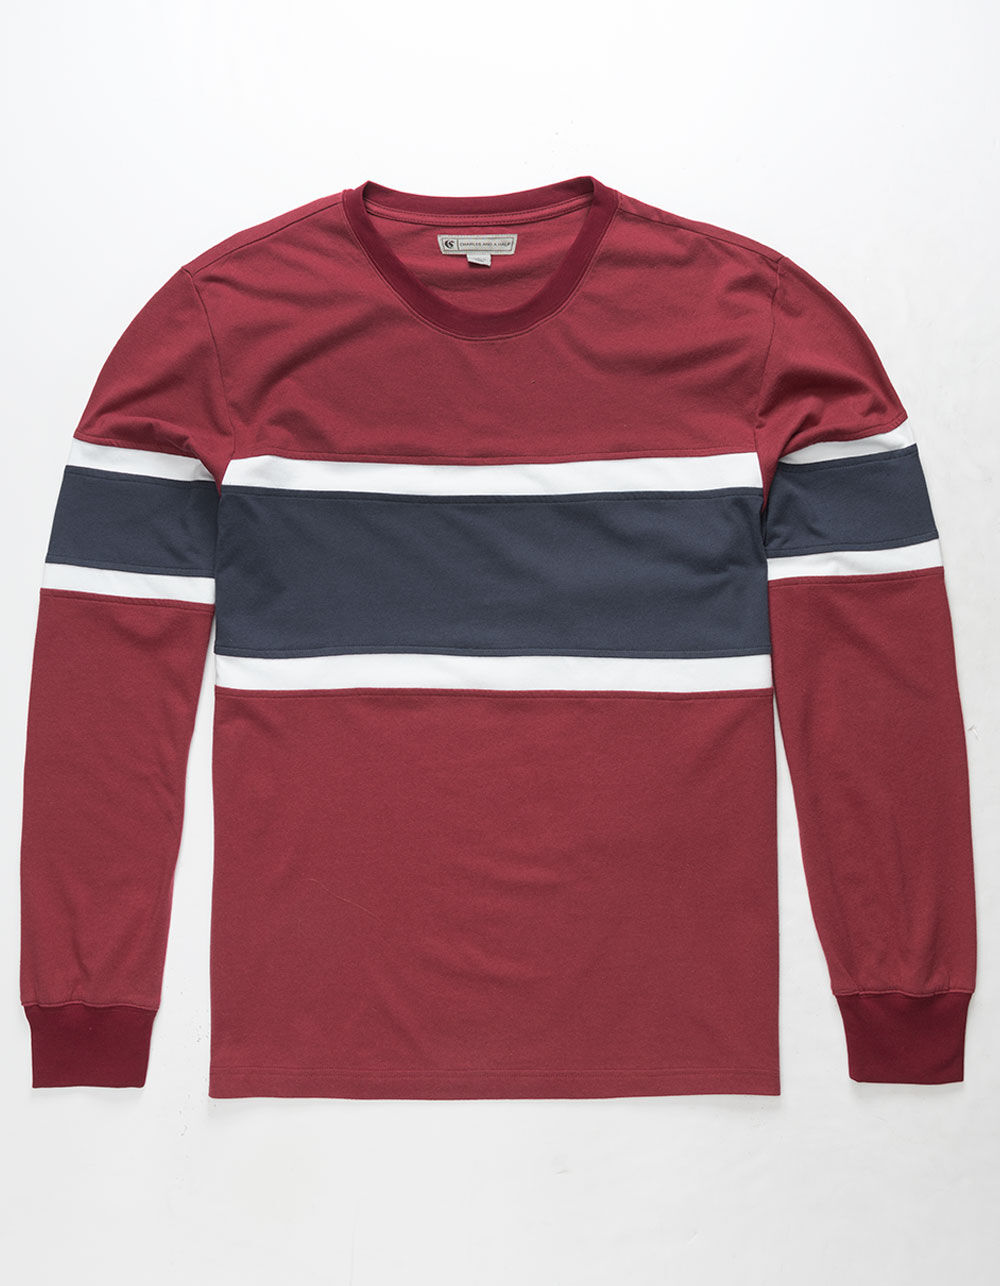 Image of CHARLES AND A HALF COLOR BLOCK T-SHIRT